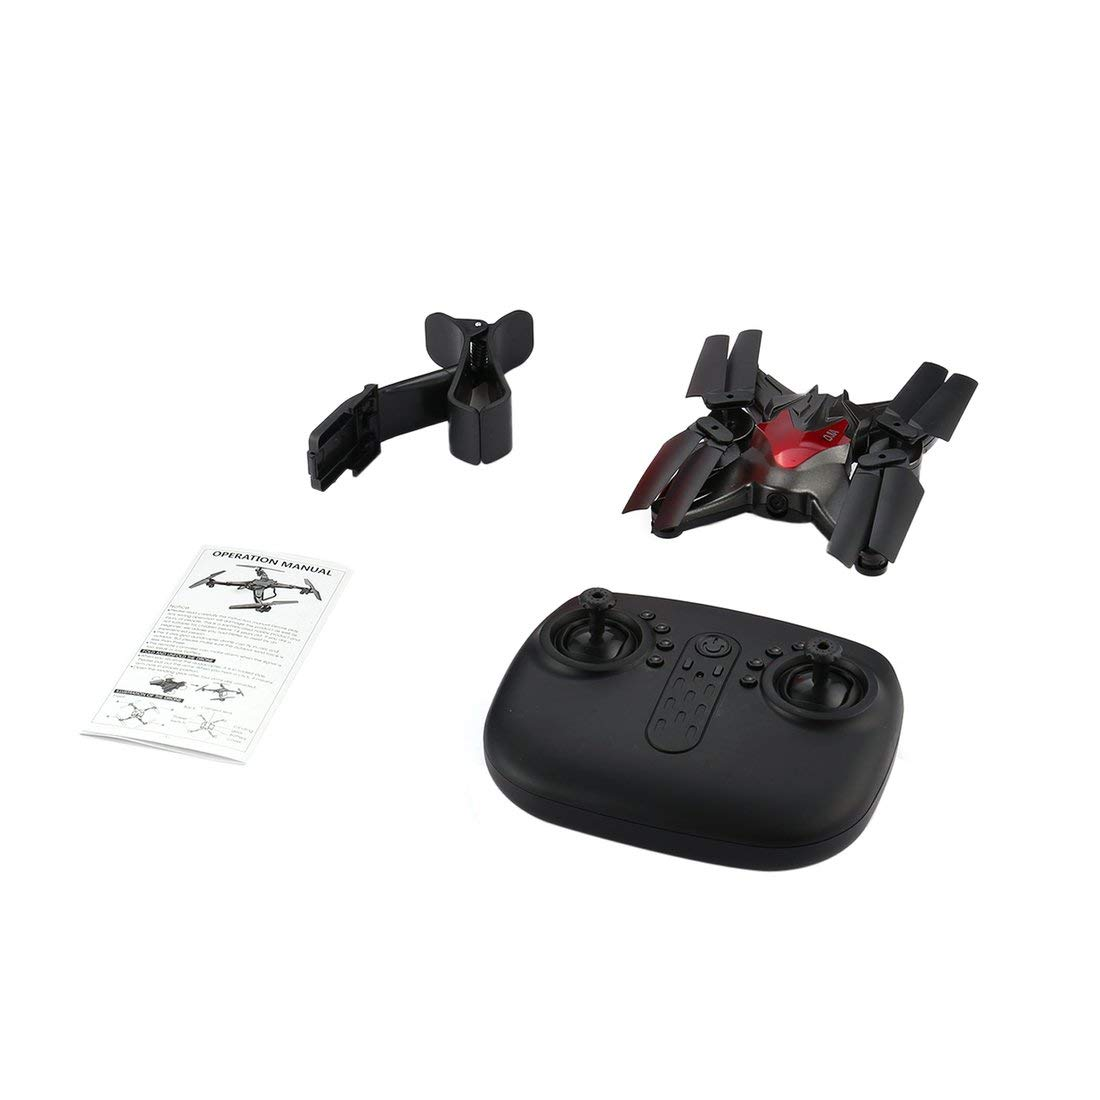 Formulaone D70WG2.4G 6-Axis Drone 0.3MP WiFi Cámara FPV RC Plegable Quadcopter Aviones con Altitude Hold Headless 3D Flips Interruptor de Velocidad